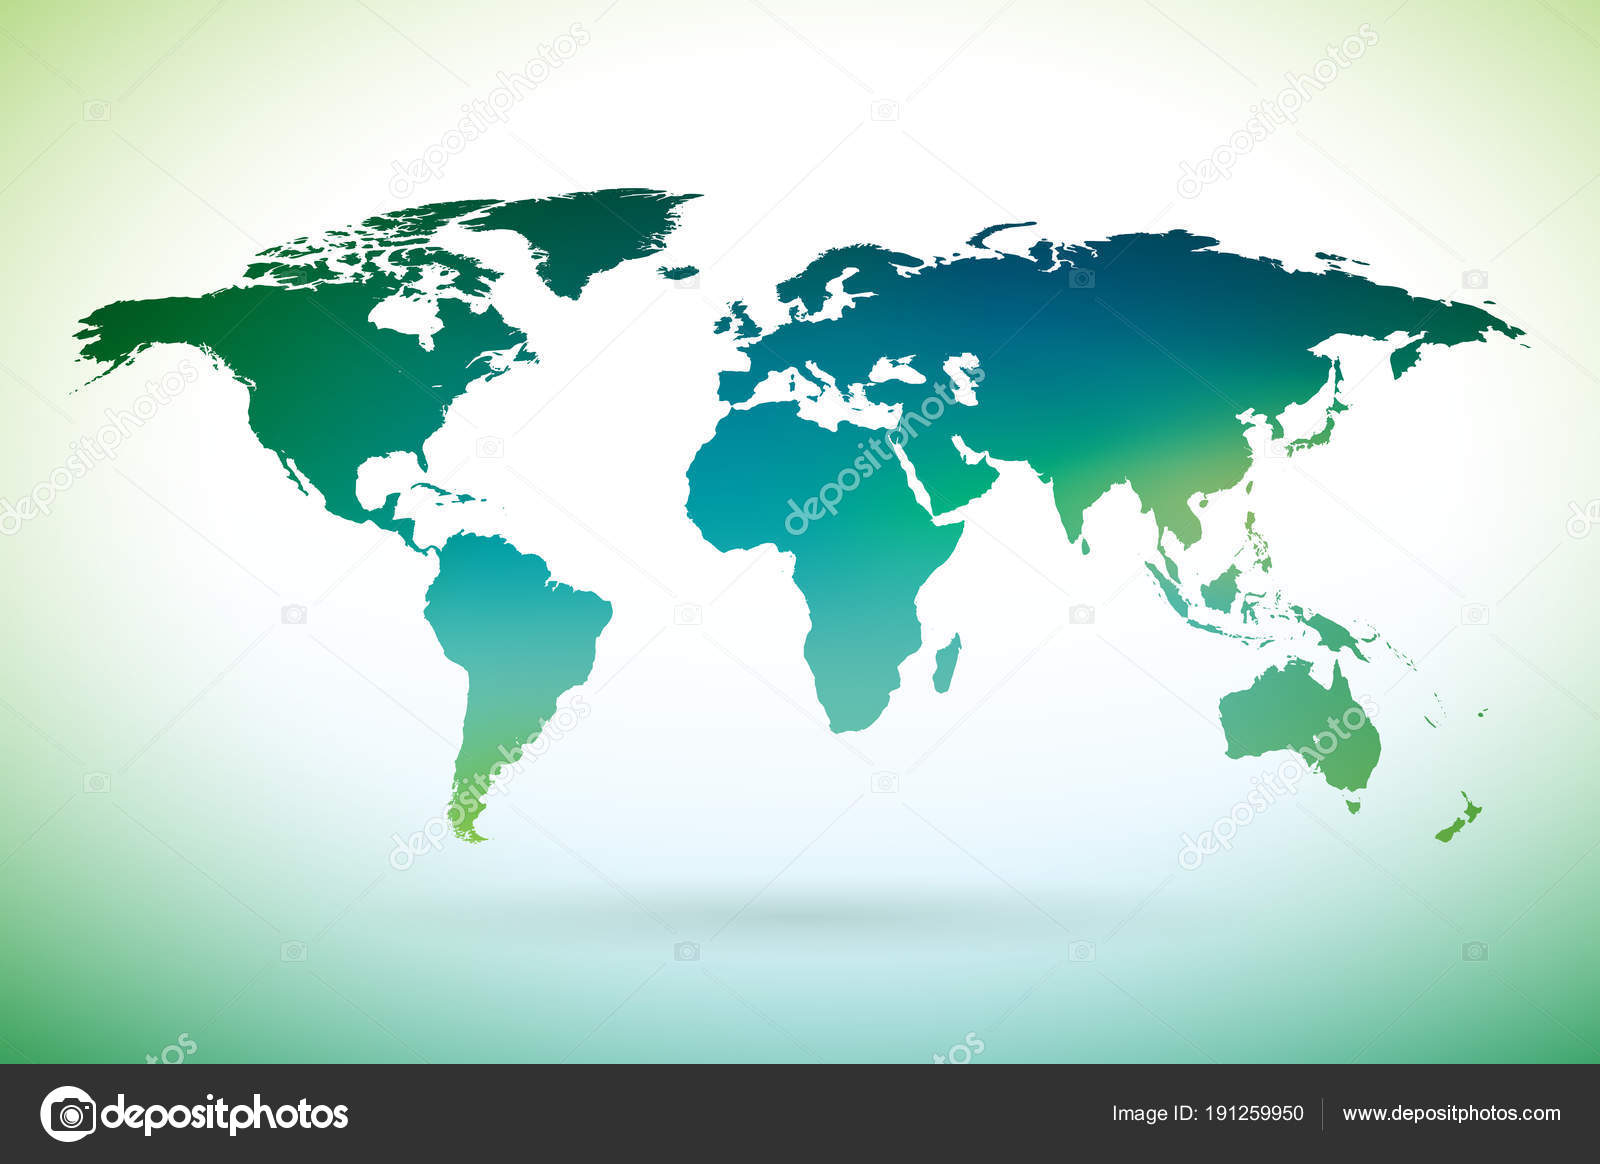 World map design on white background on environment concept earth world map design on white background on environment concept earth illustration with continents vector graphic for banner poster or greeting card vector gumiabroncs Image collections